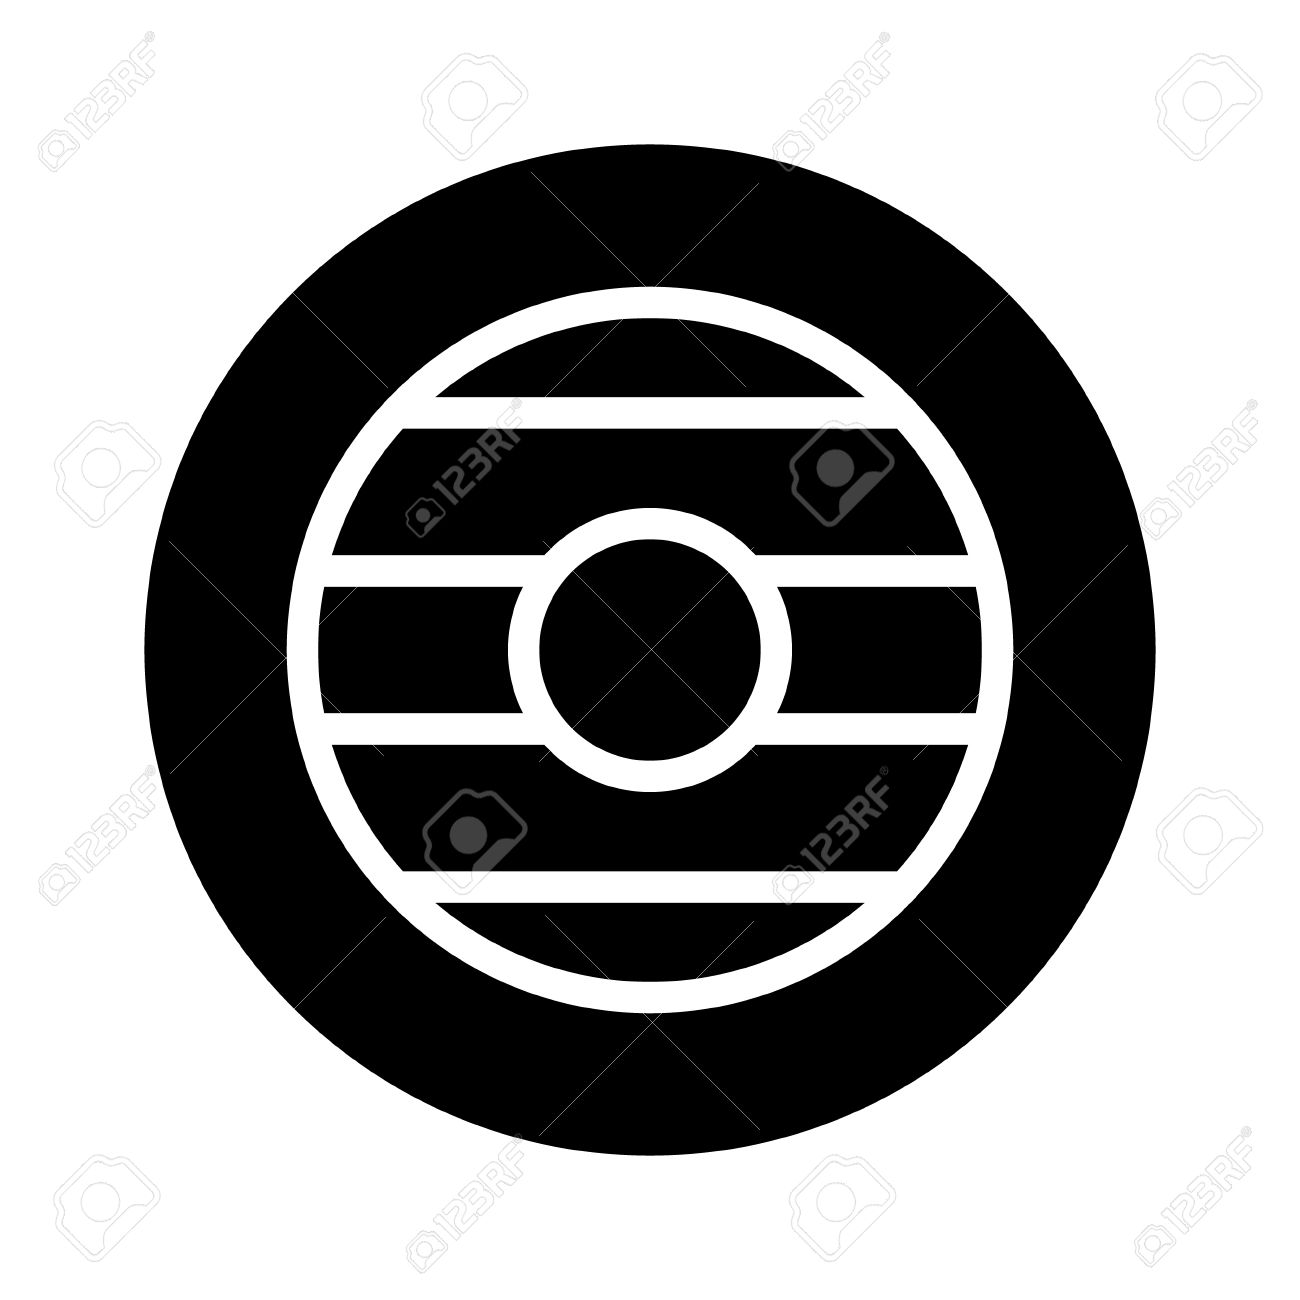 Buckler Round Wooden Shield Flat Icon For Games And Websites.